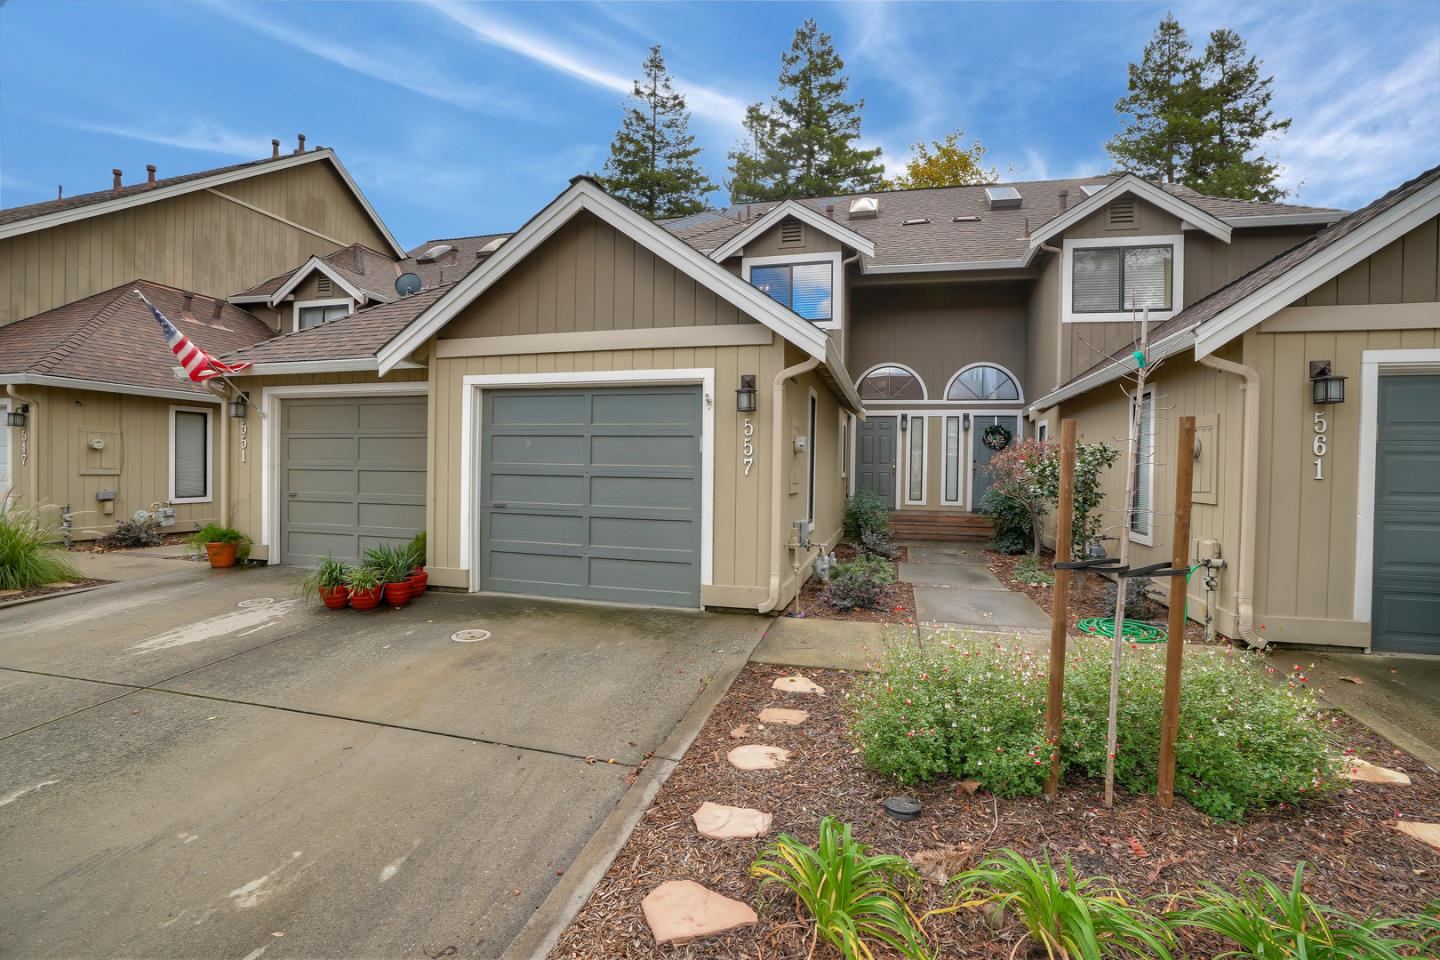 557 Creekside LN, Morgan Hill in Santa Clara County, CA 95037 Home for Sale